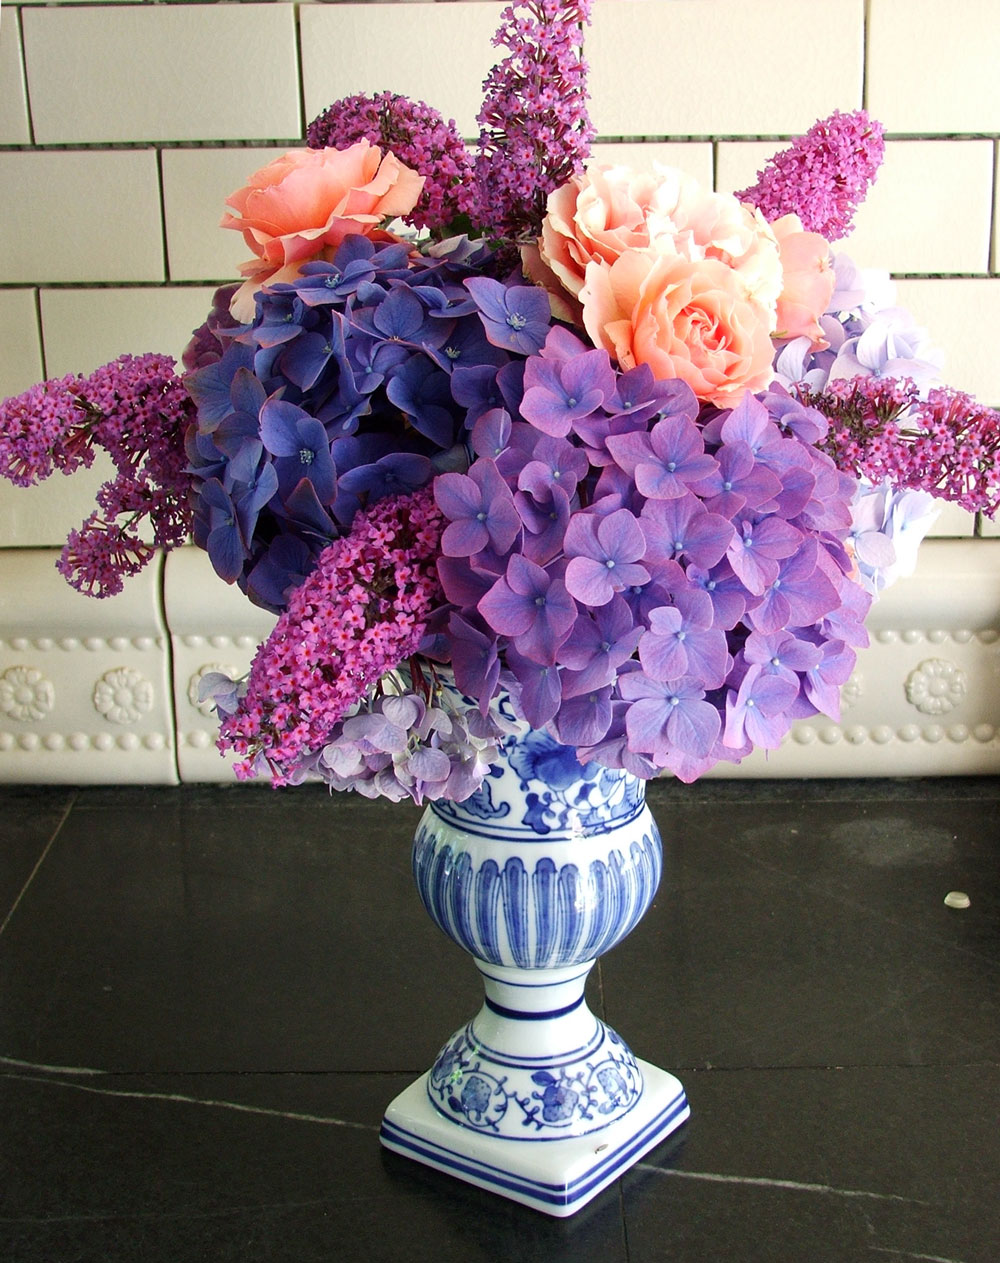 Hydrangea-bouquet-from-Kimberly's-wedding_adj_web.jpg